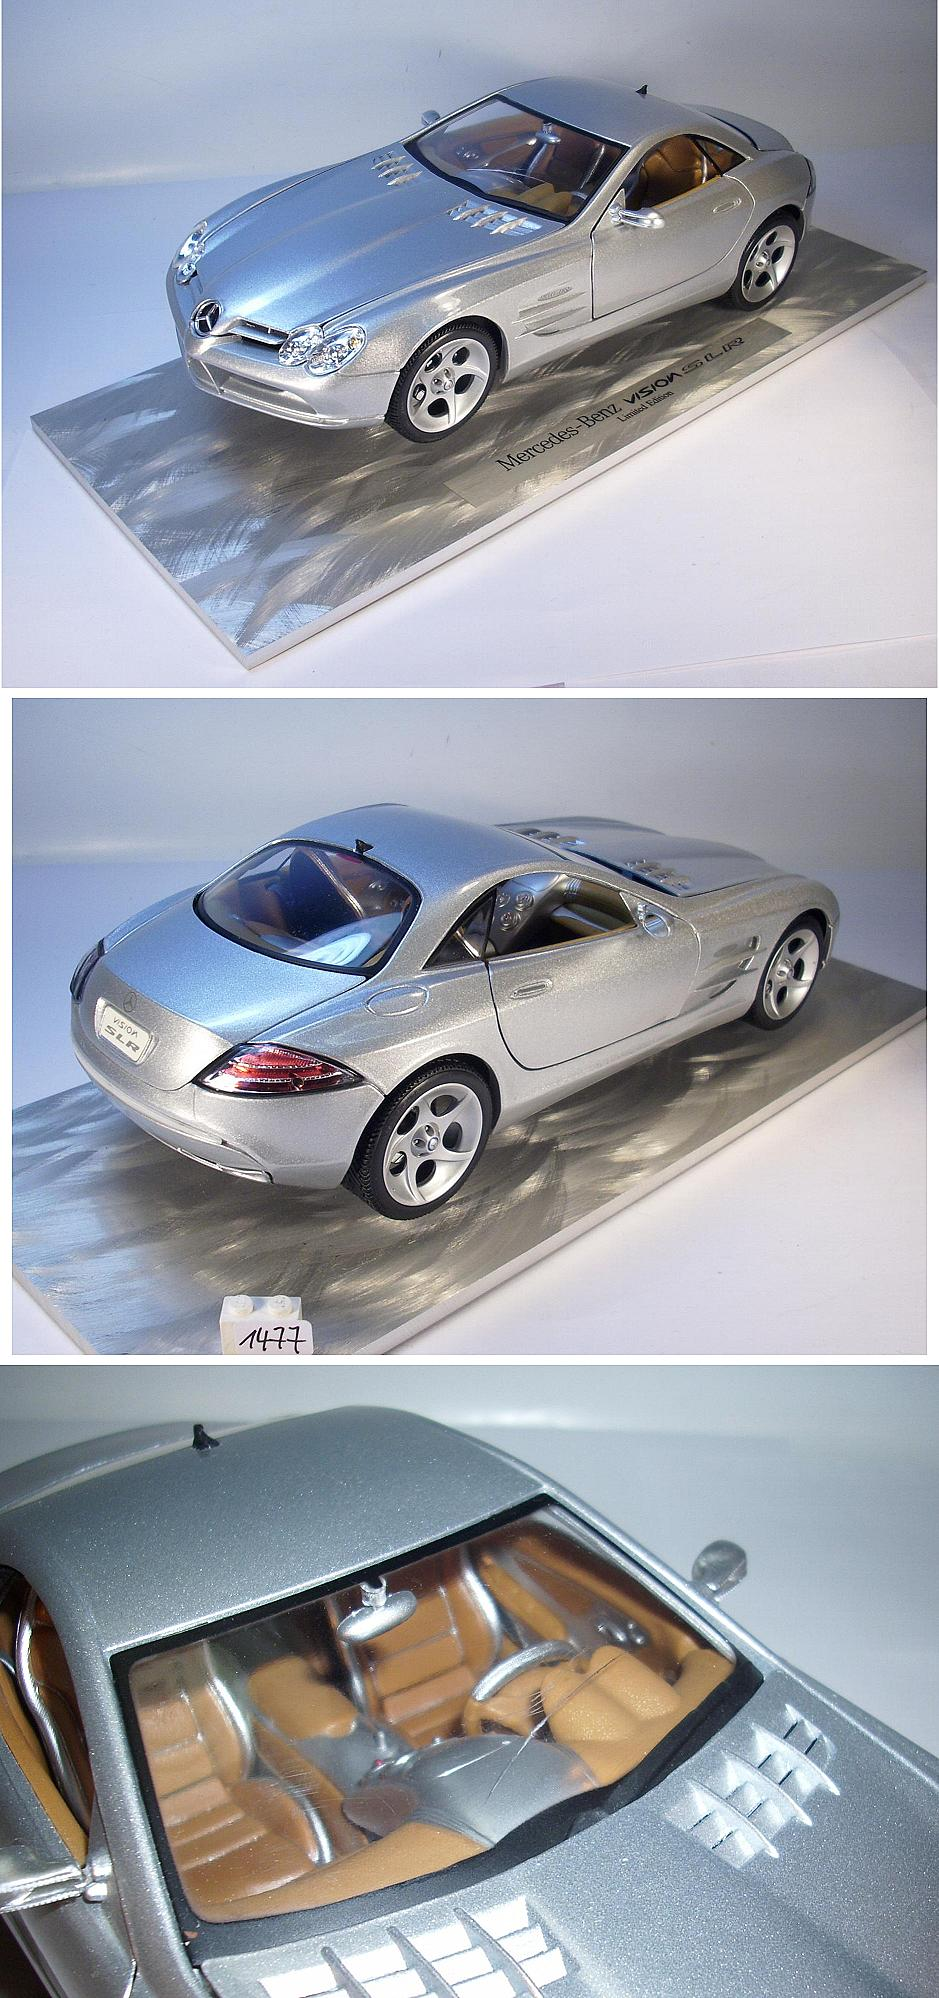 maisto 1 18 mercedes benz vision slr auf aluplatte limited edition 1477 ebay. Black Bedroom Furniture Sets. Home Design Ideas